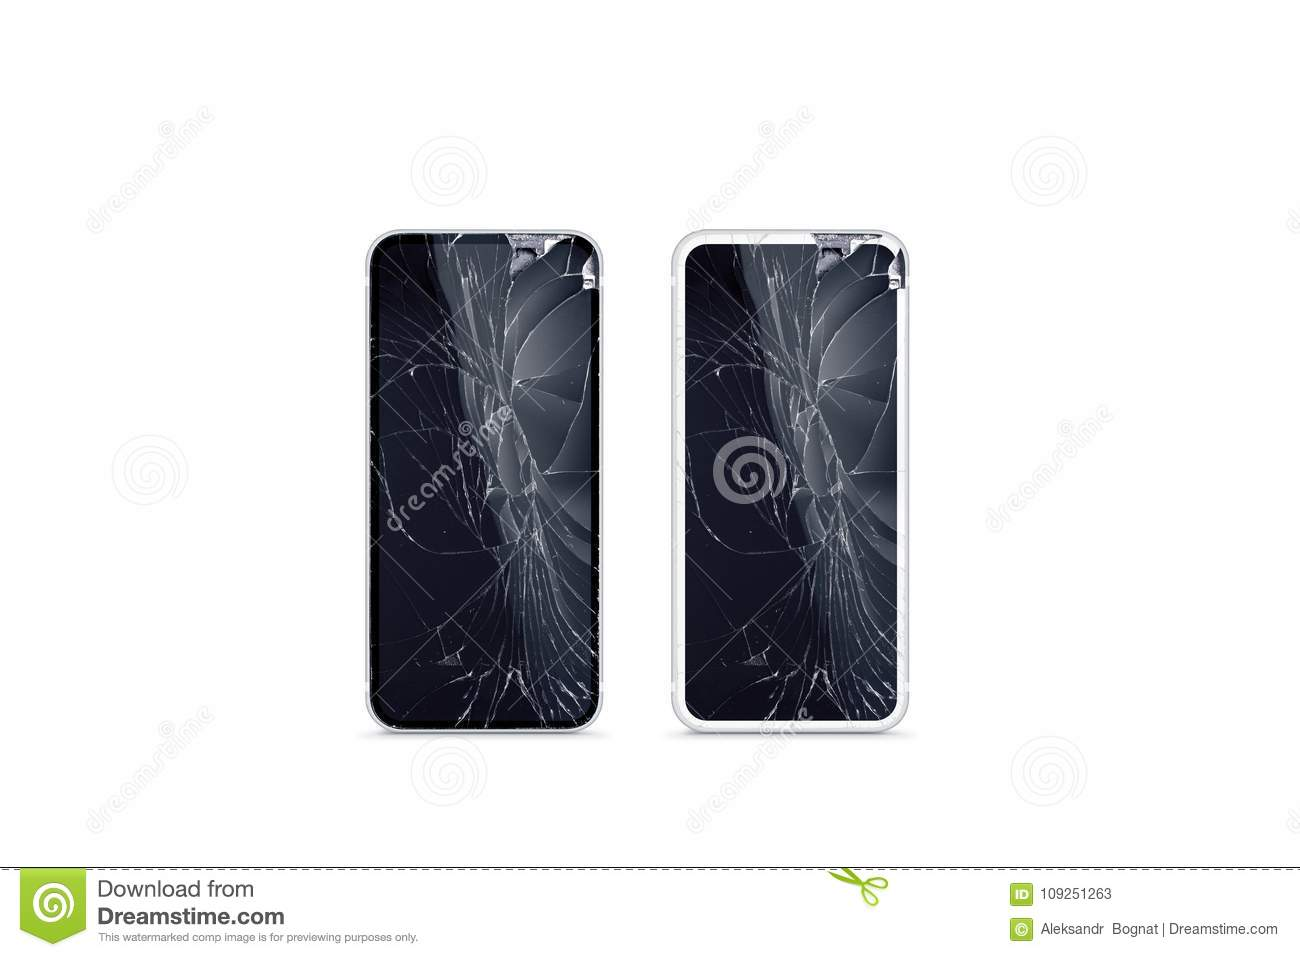 Broken mobile phone screen mockup, black and white, front view.